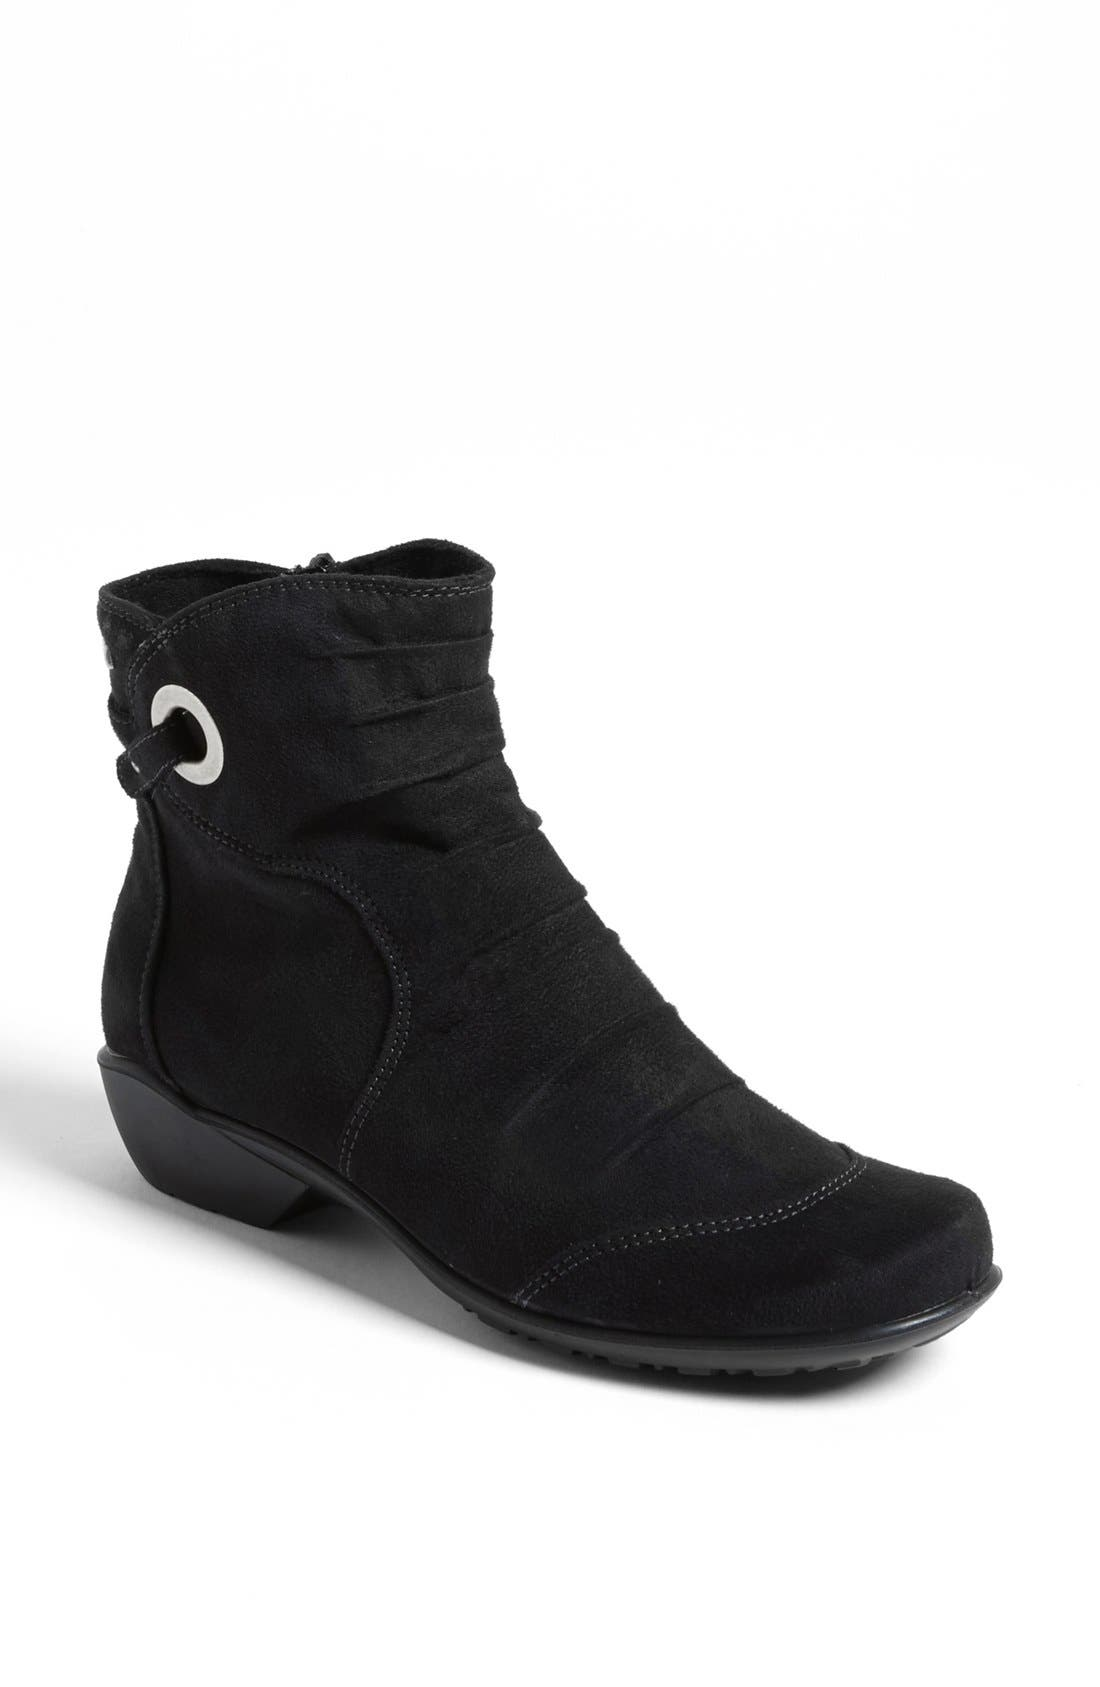 Romika® 'Citytex 121' Boot